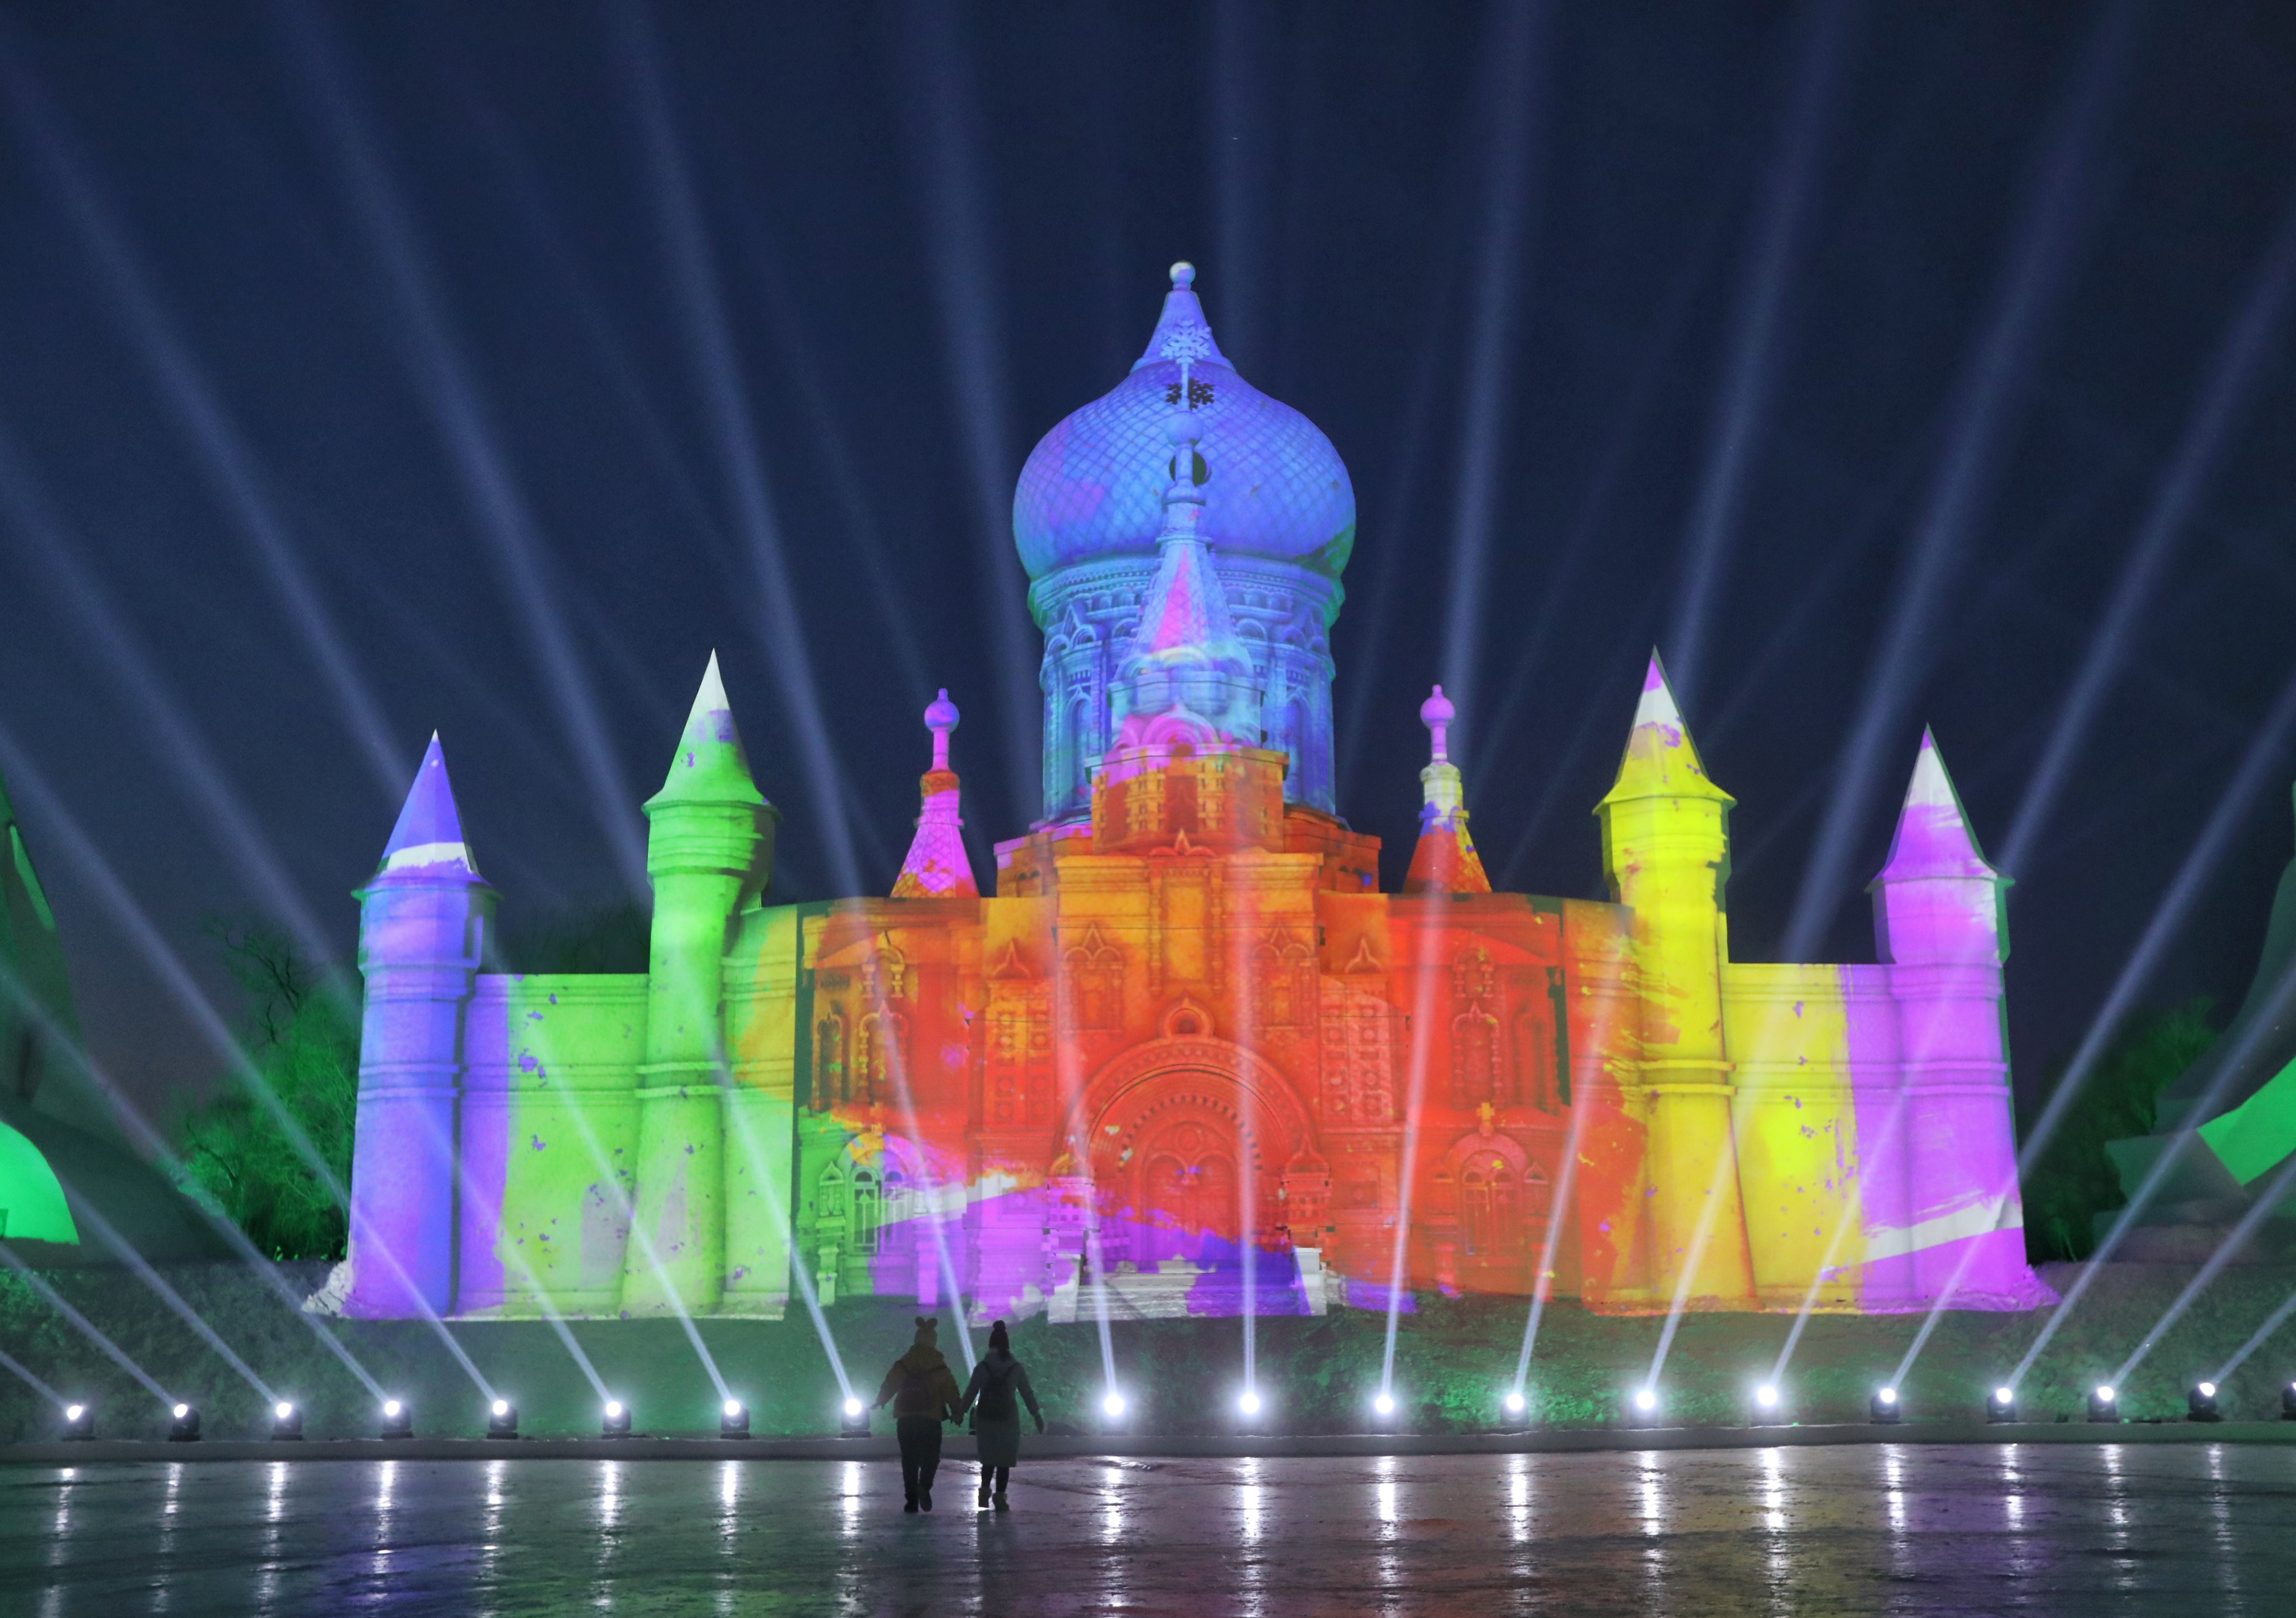 Snow Castles, Harbin International Ice and Snow Festival